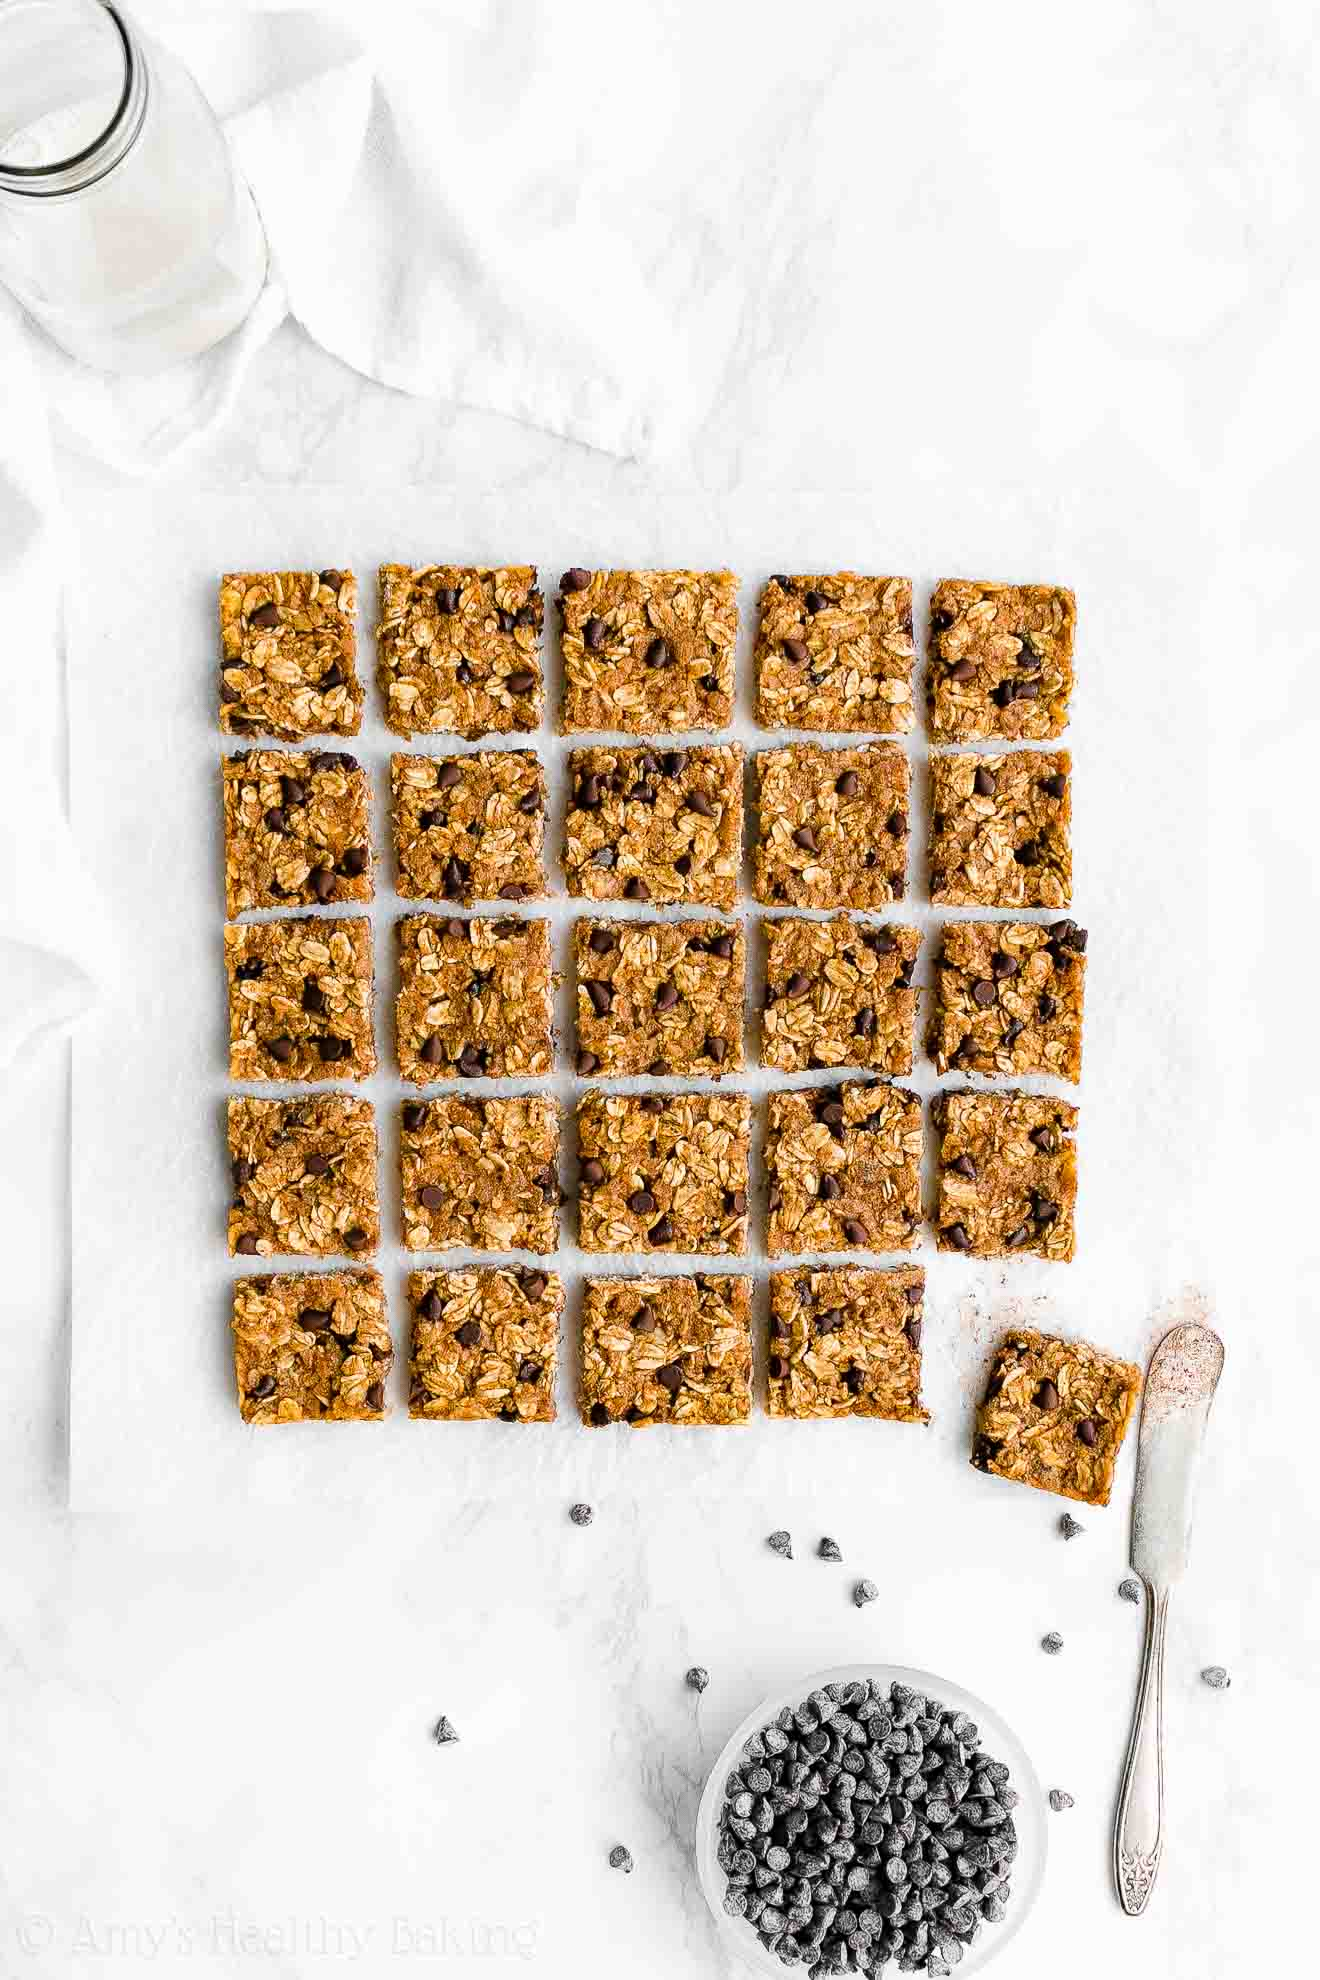 Healthy Low Calorie Low Fat Pumpkin Chocolate Chip Granola Bar Bites